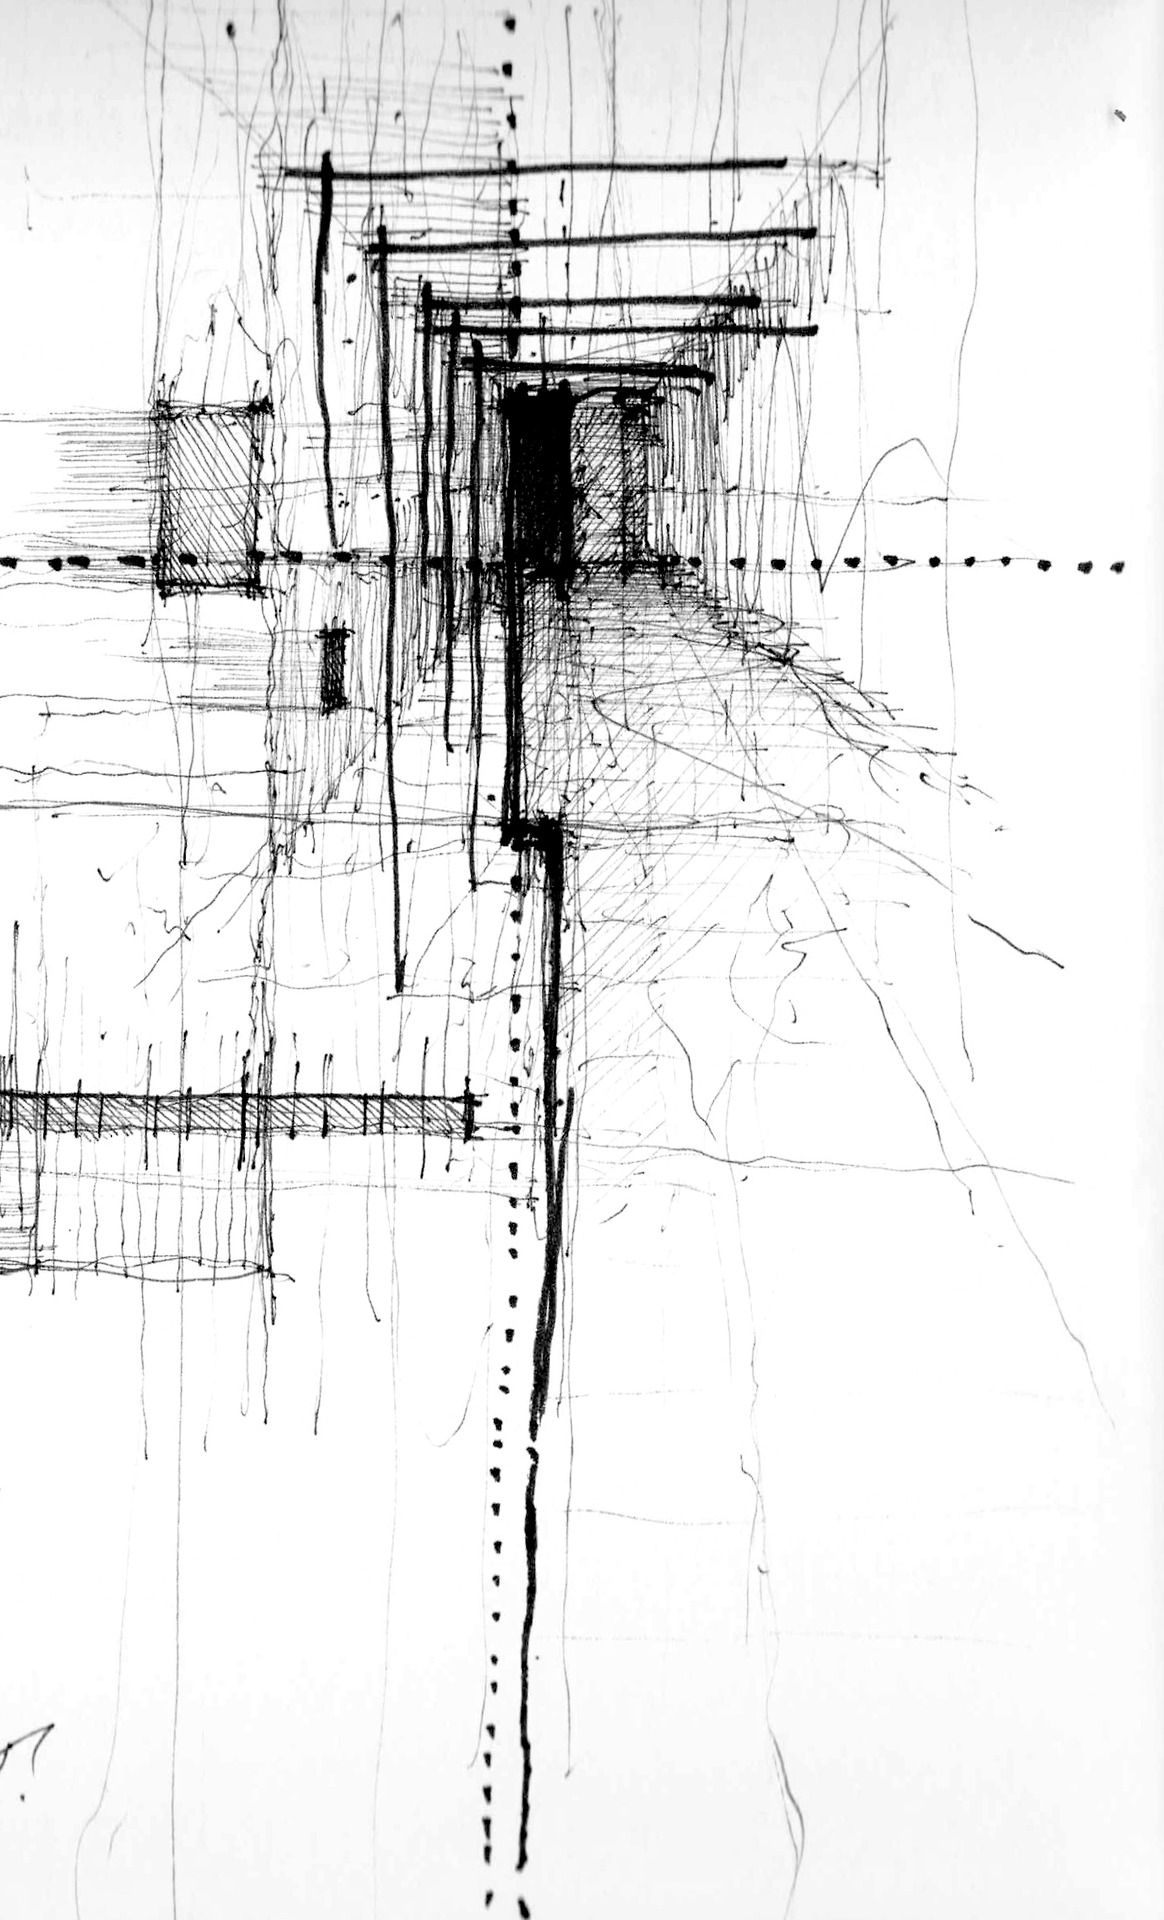 Showing Space In An Abstract Way Using Construction Lines Dessin Architecture Dessin Abstrait Peinture Abstraite